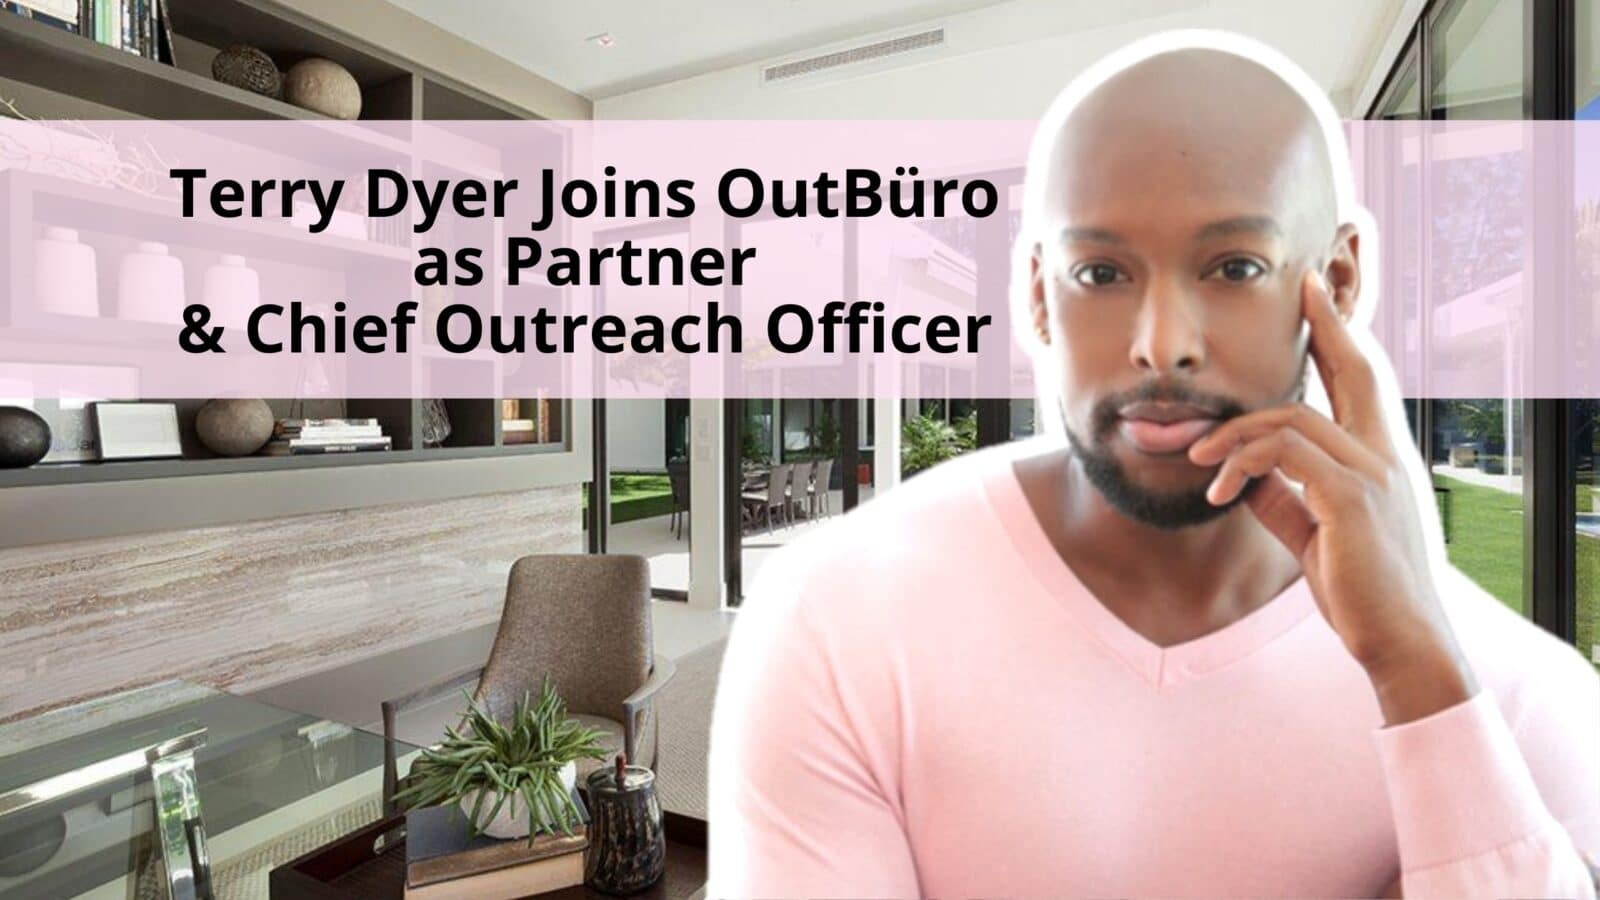 Terry Dyer Joins OutBuro as Partner and Chief Outreach Officer LGBTQ Corporate Equality Ratings workplace Reviews Gay Lesbian Employee strategic talent sourcing acquisition hiring employer branding